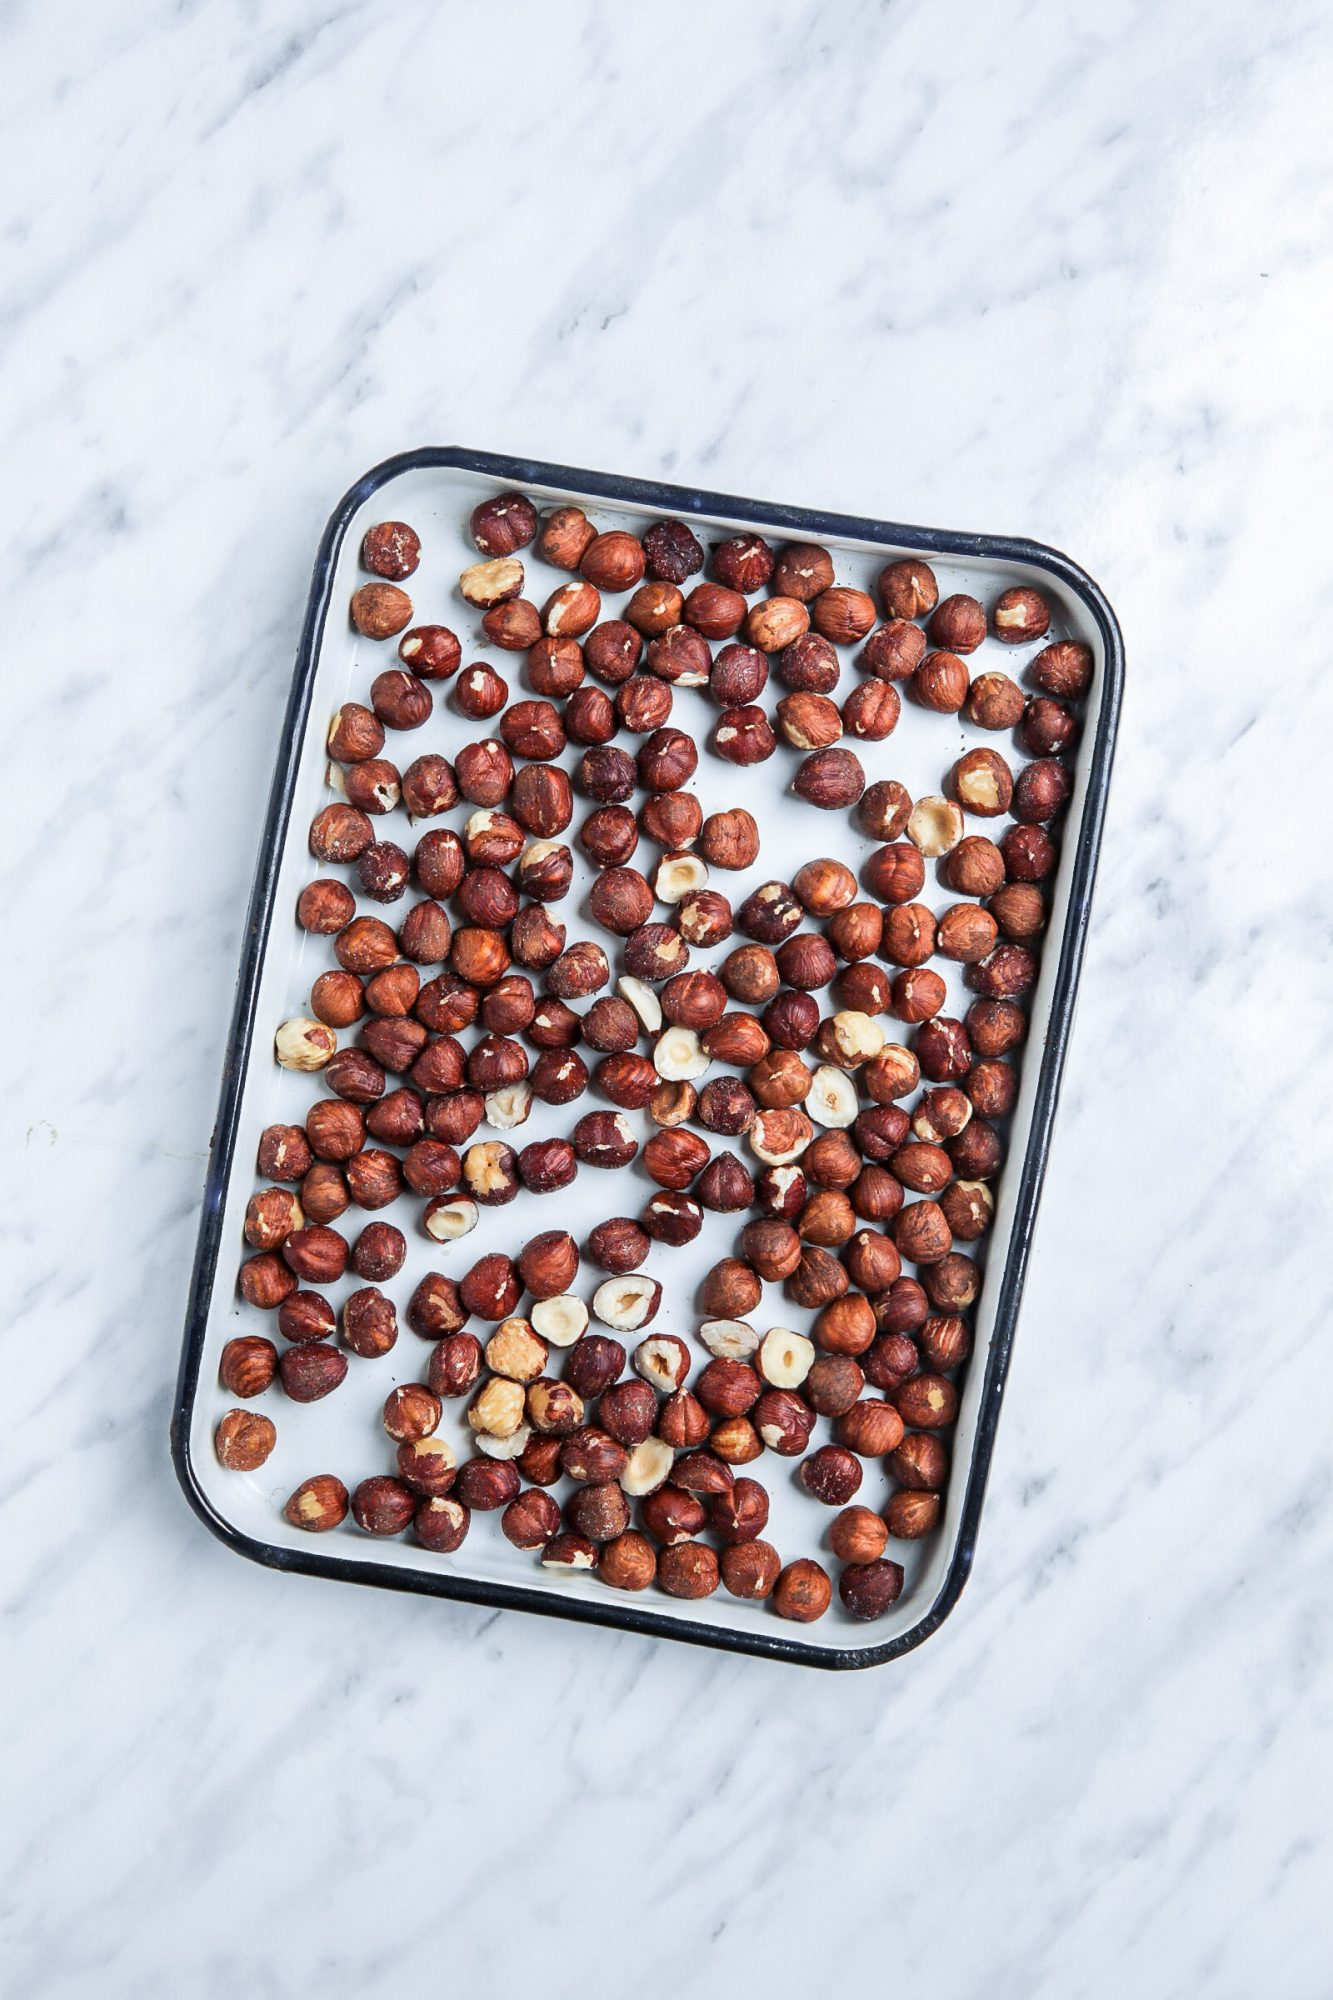 Raw Hazelnuts on Sheetpan